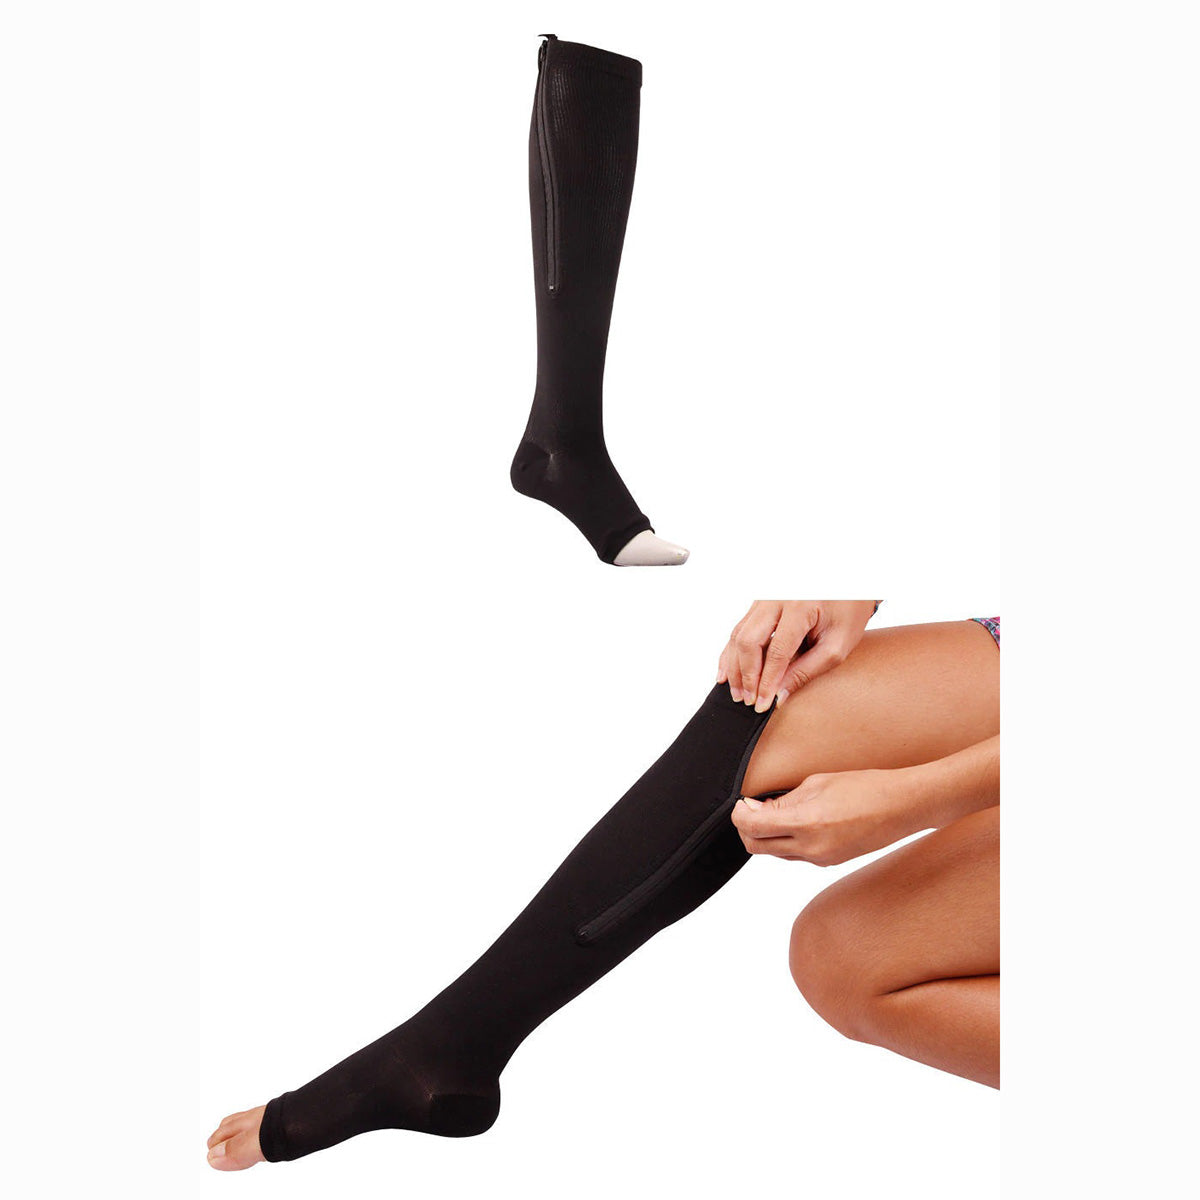 Women's Leg Support  Zip up Compression Socks